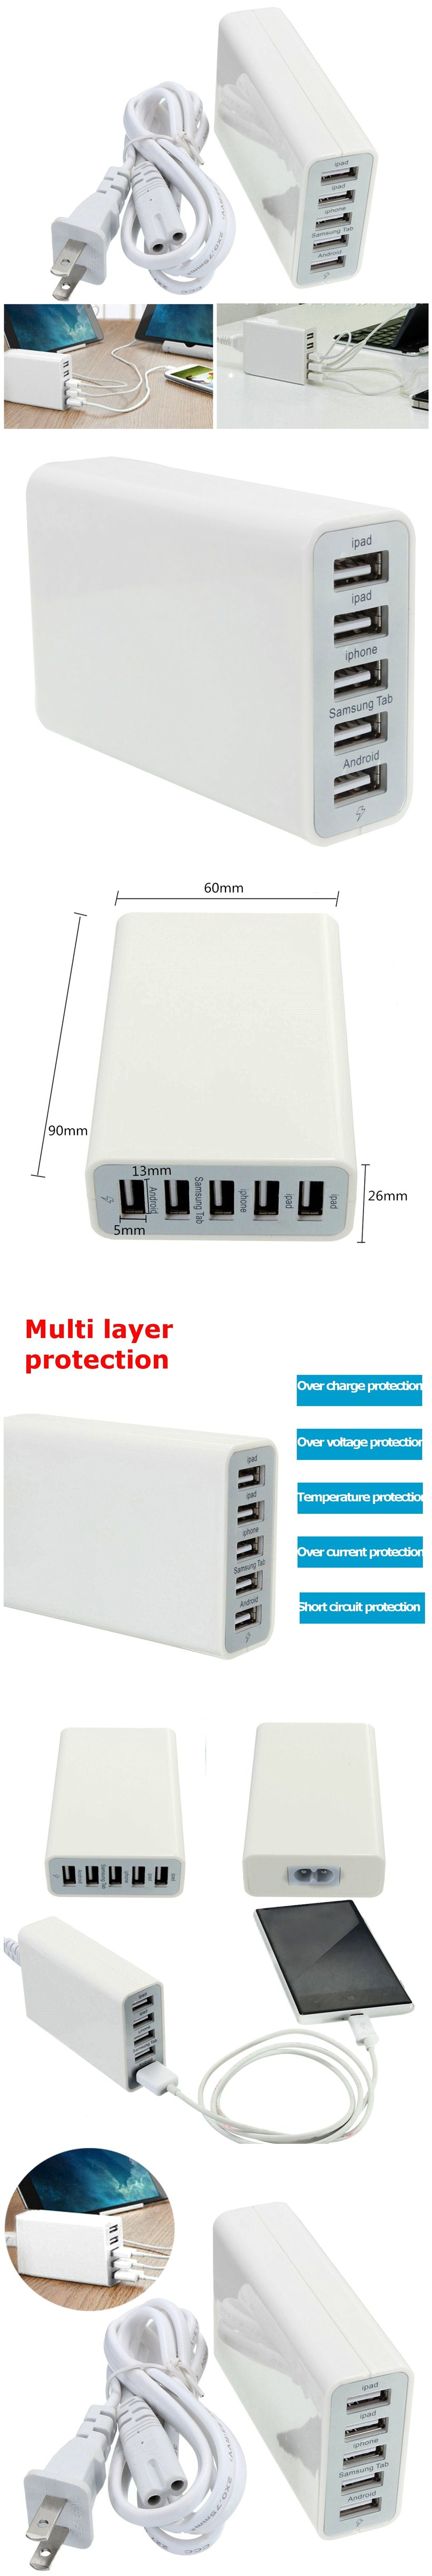 40W 8A 5V 5 Port USB Intelligent Hub Wall Charger Travel Adapter For iPhone iPad Samsung